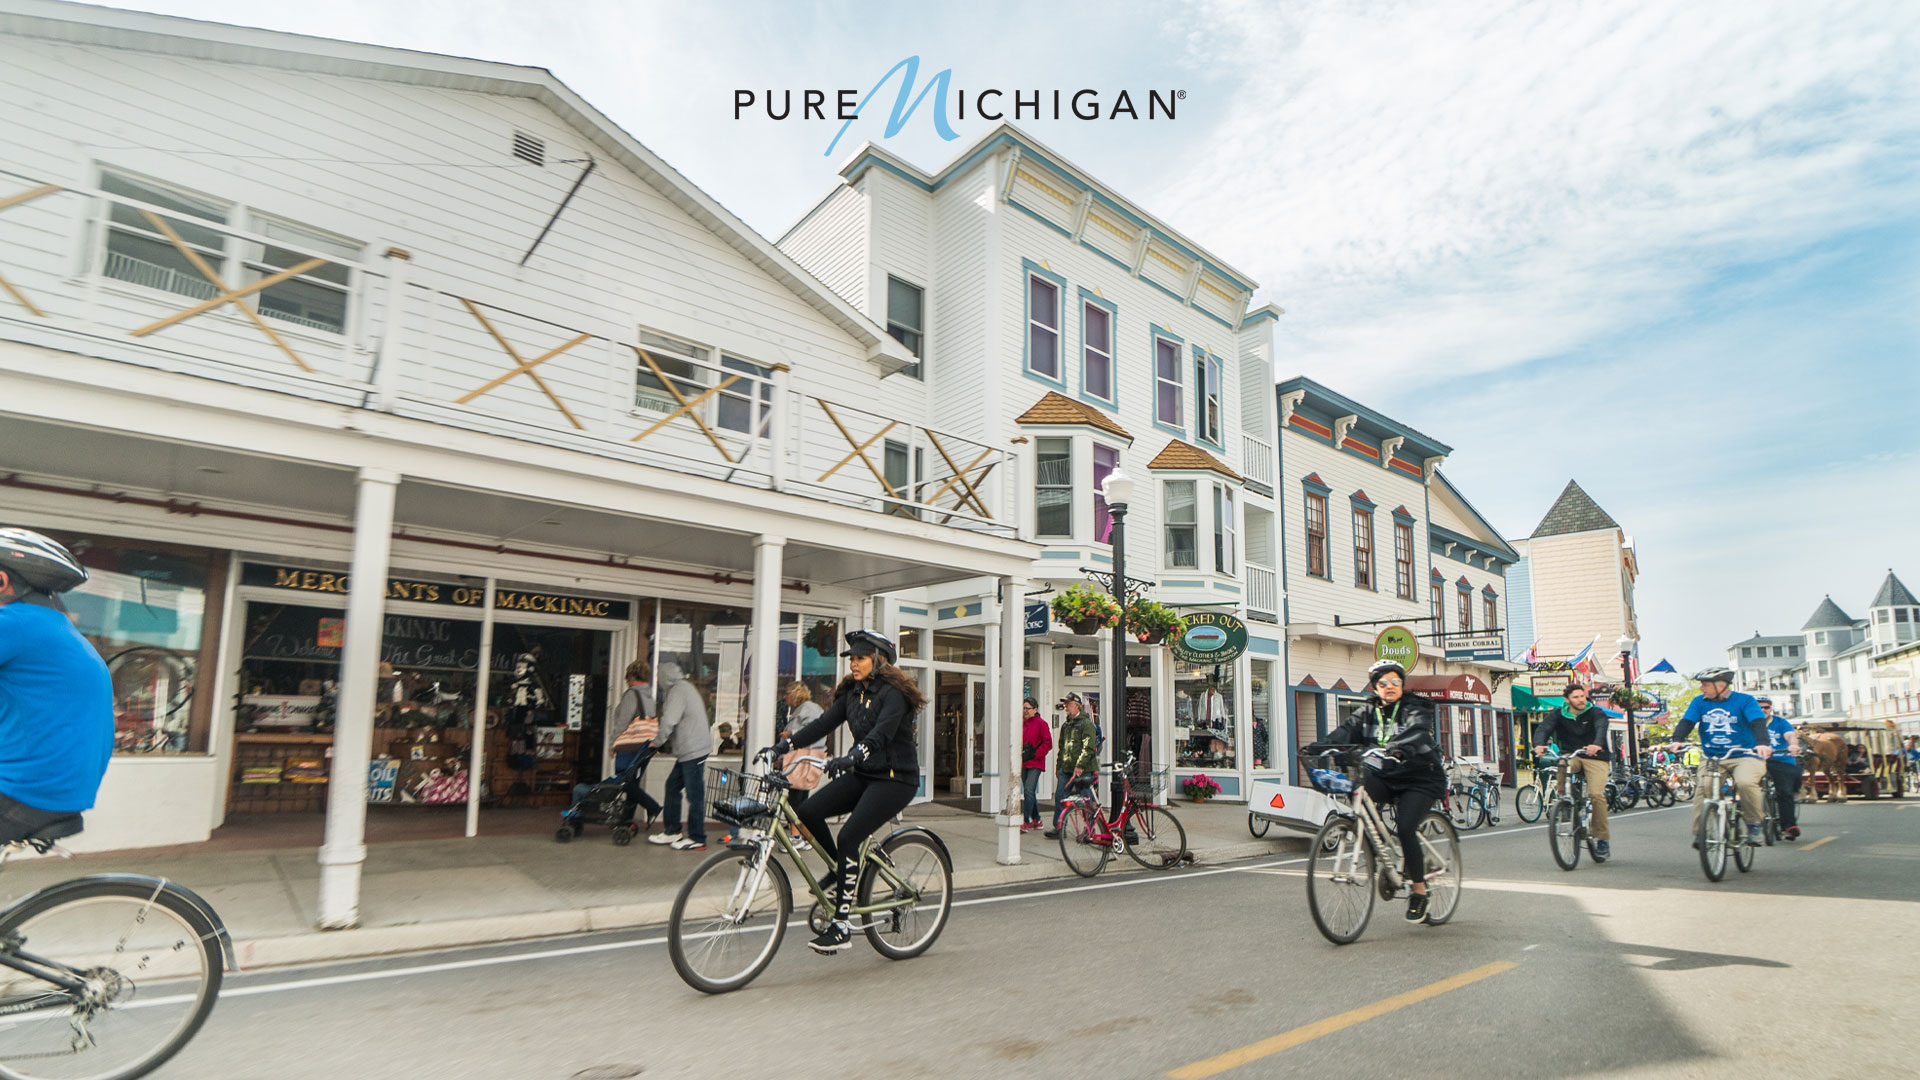 People on bicycles downtown on Mackinac Island